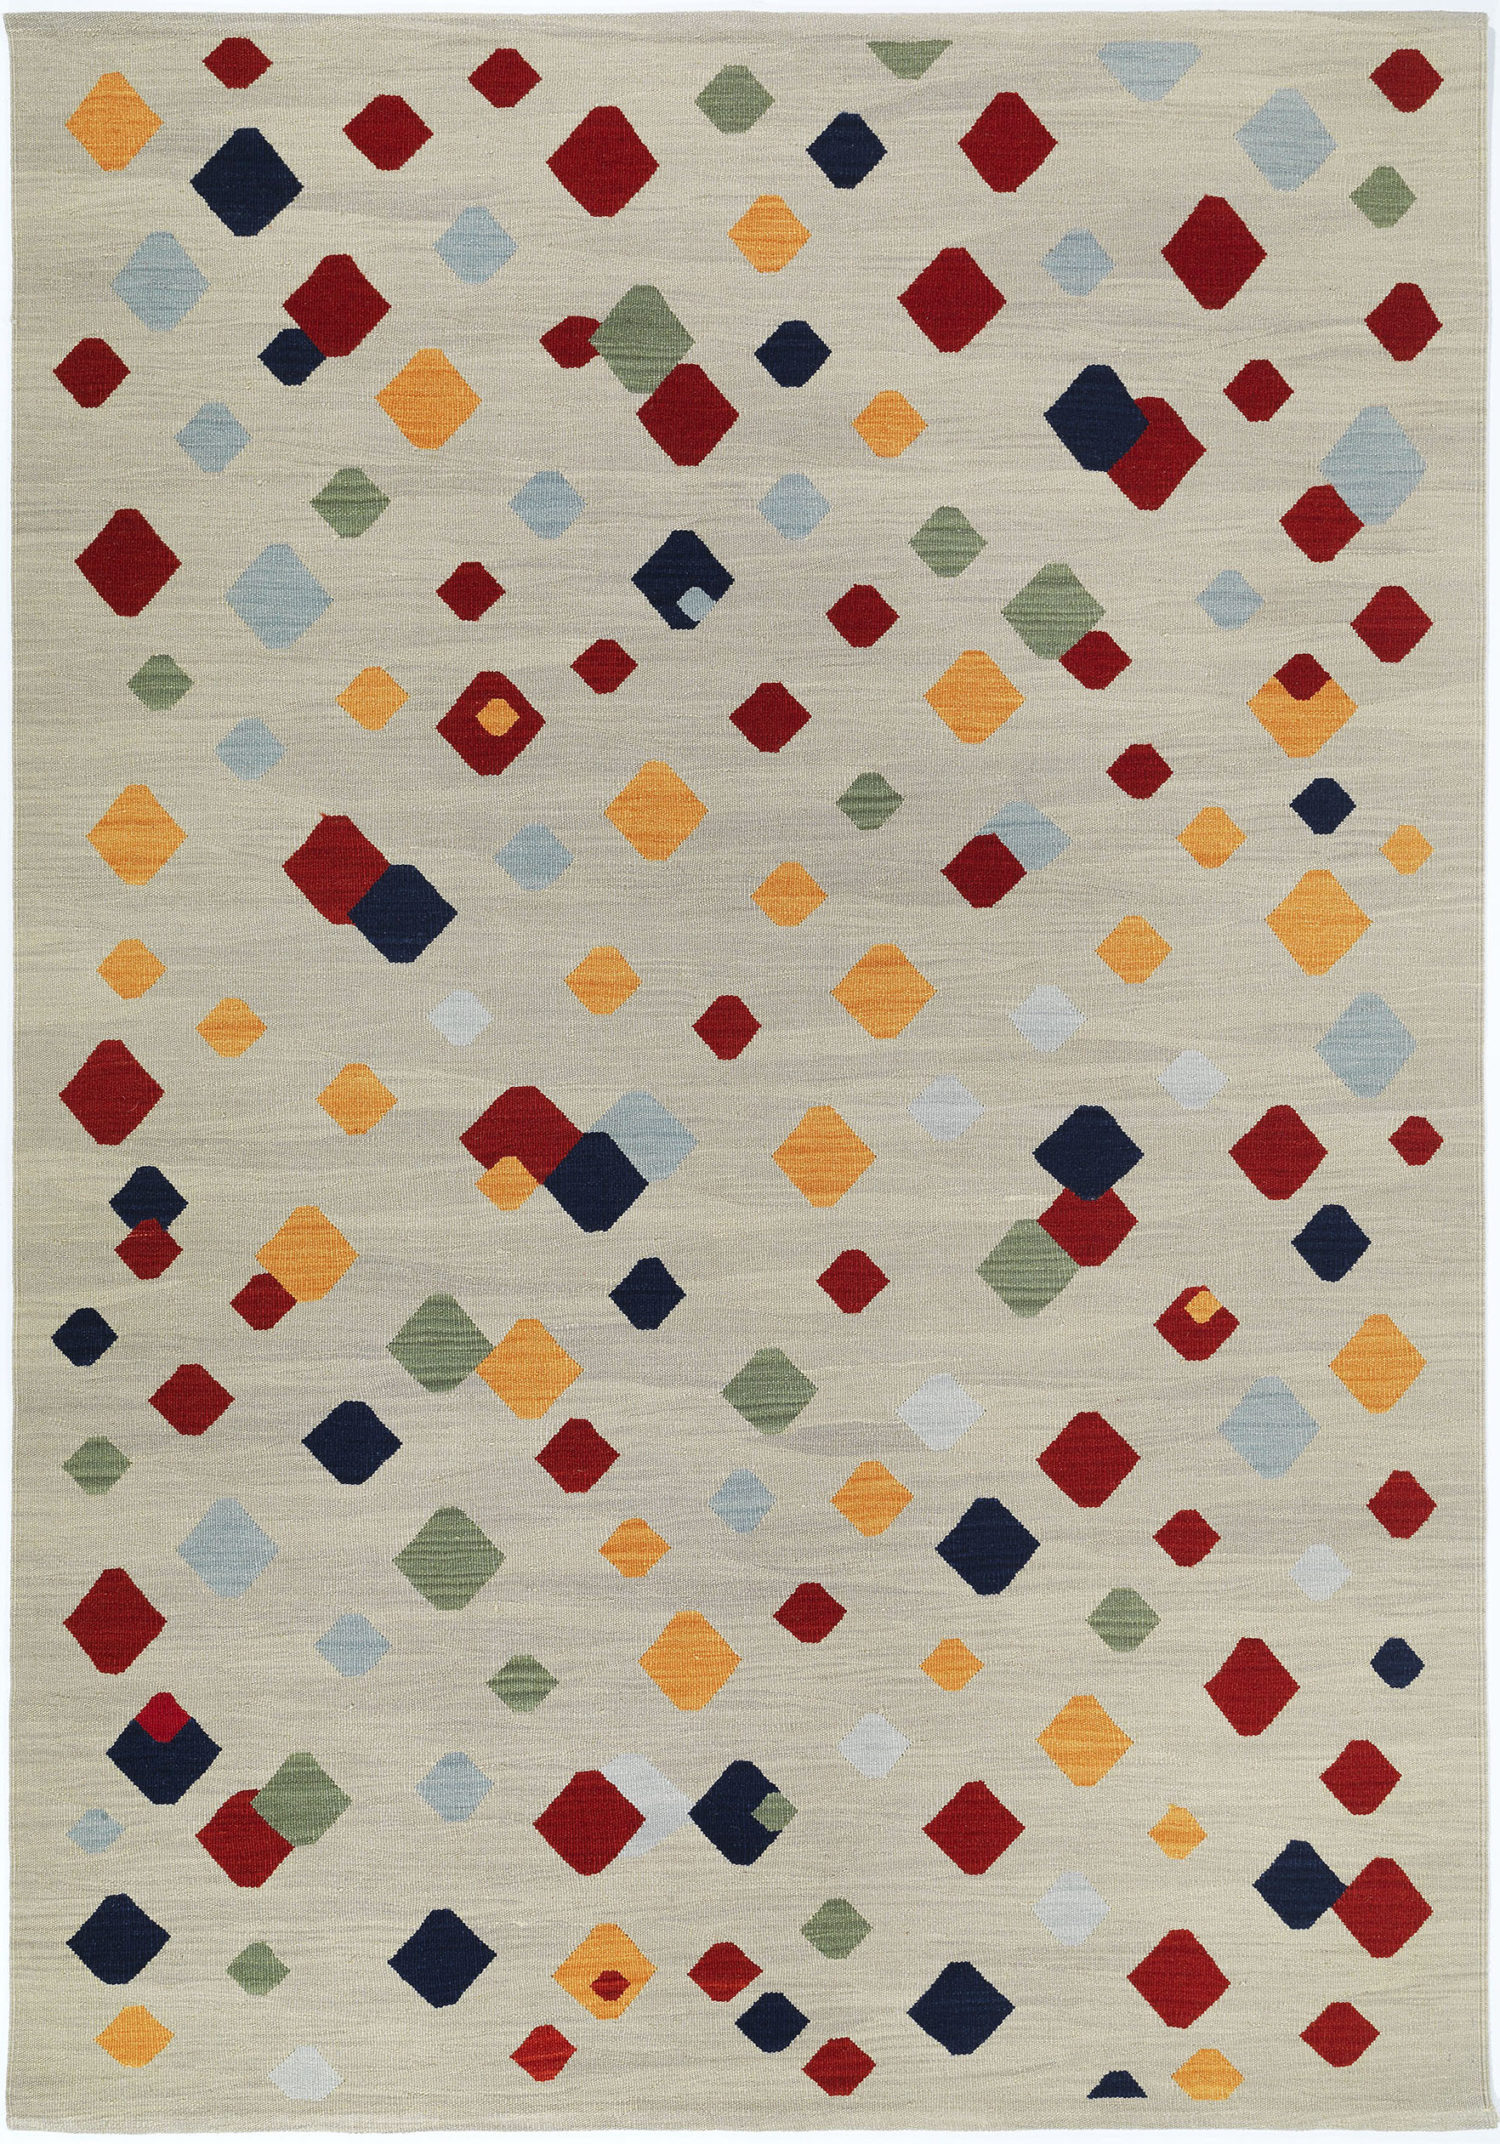 Manzara Kilims Collection - Light Patara